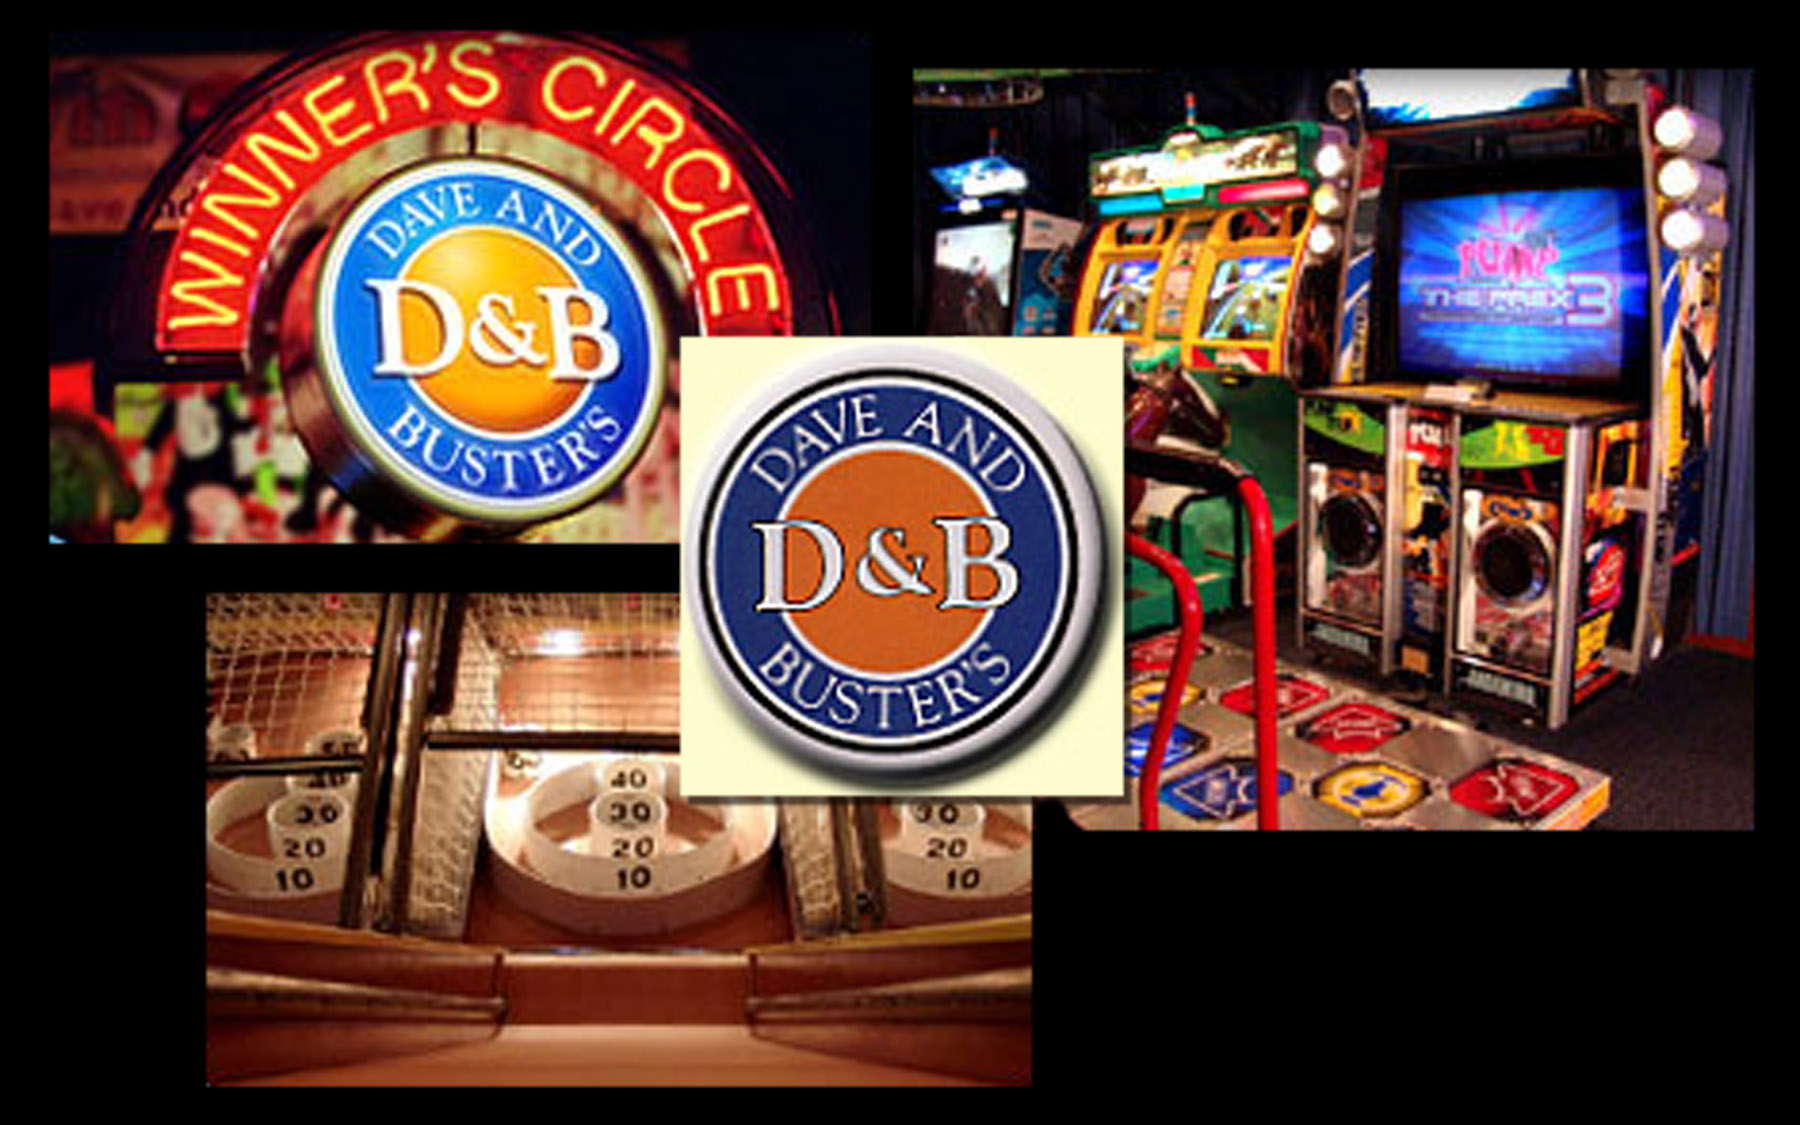 Dave & Buster's in Panama City Beach, FL